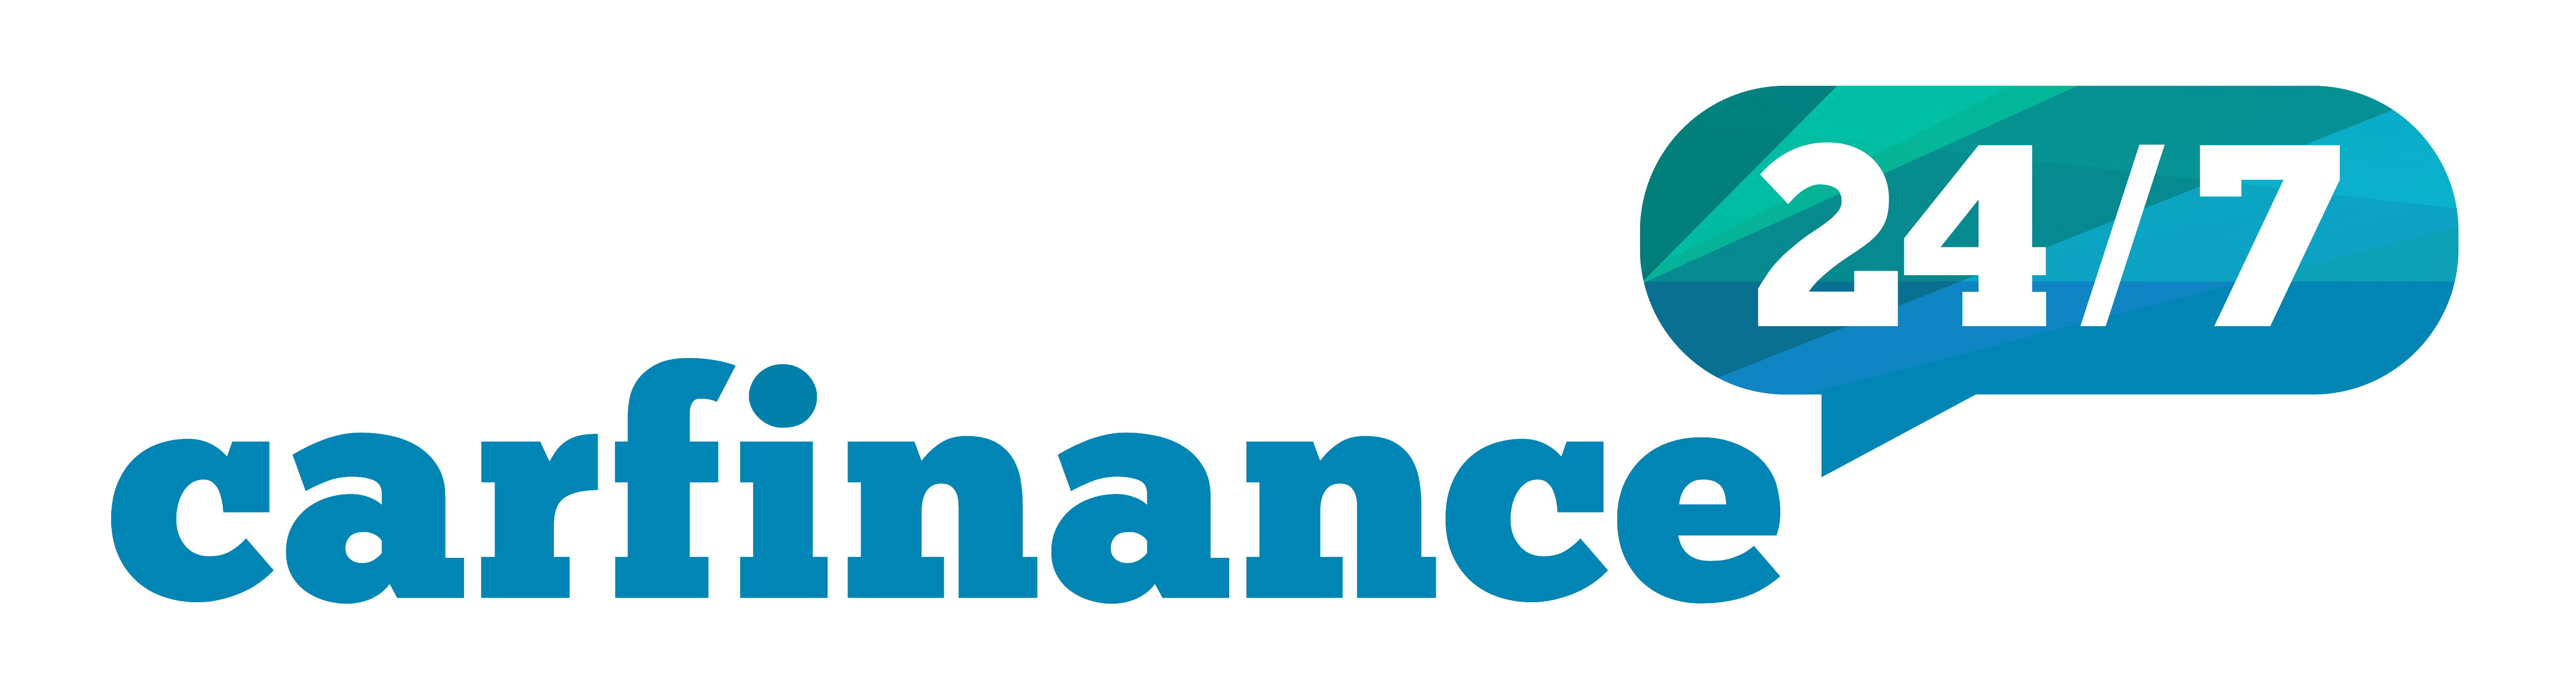 Car Finance Logo Car Finance 247 Logo